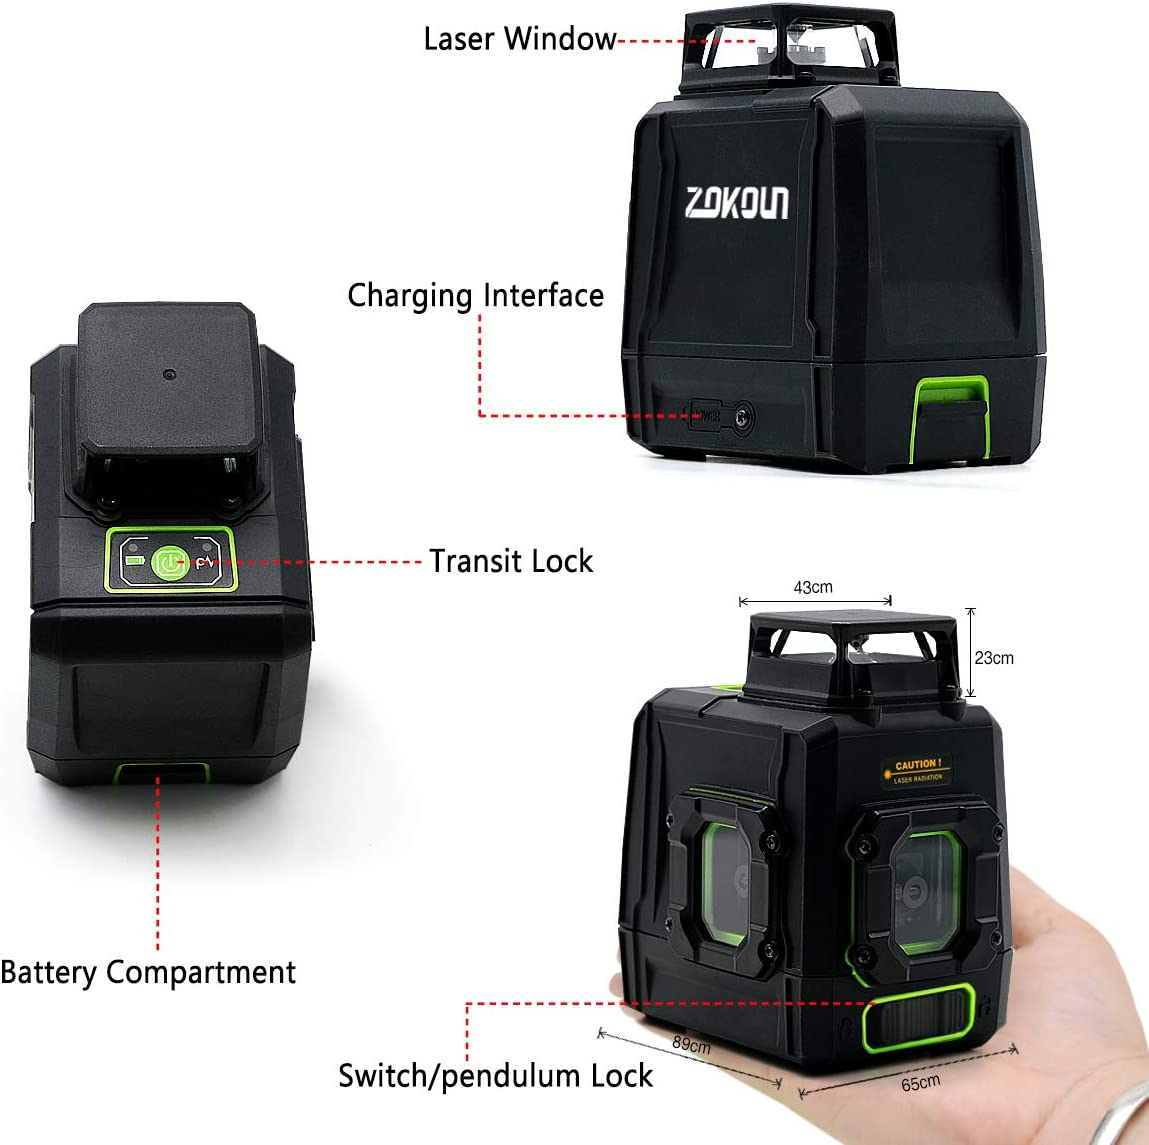 AK1CG Self-Leveling Green Beam Laser Level Dual Plane Leveling and Alignment Line Laser Level One 360/° Vertical Line Magnetic Pivoting Zokoun 360 Cross Line Laser